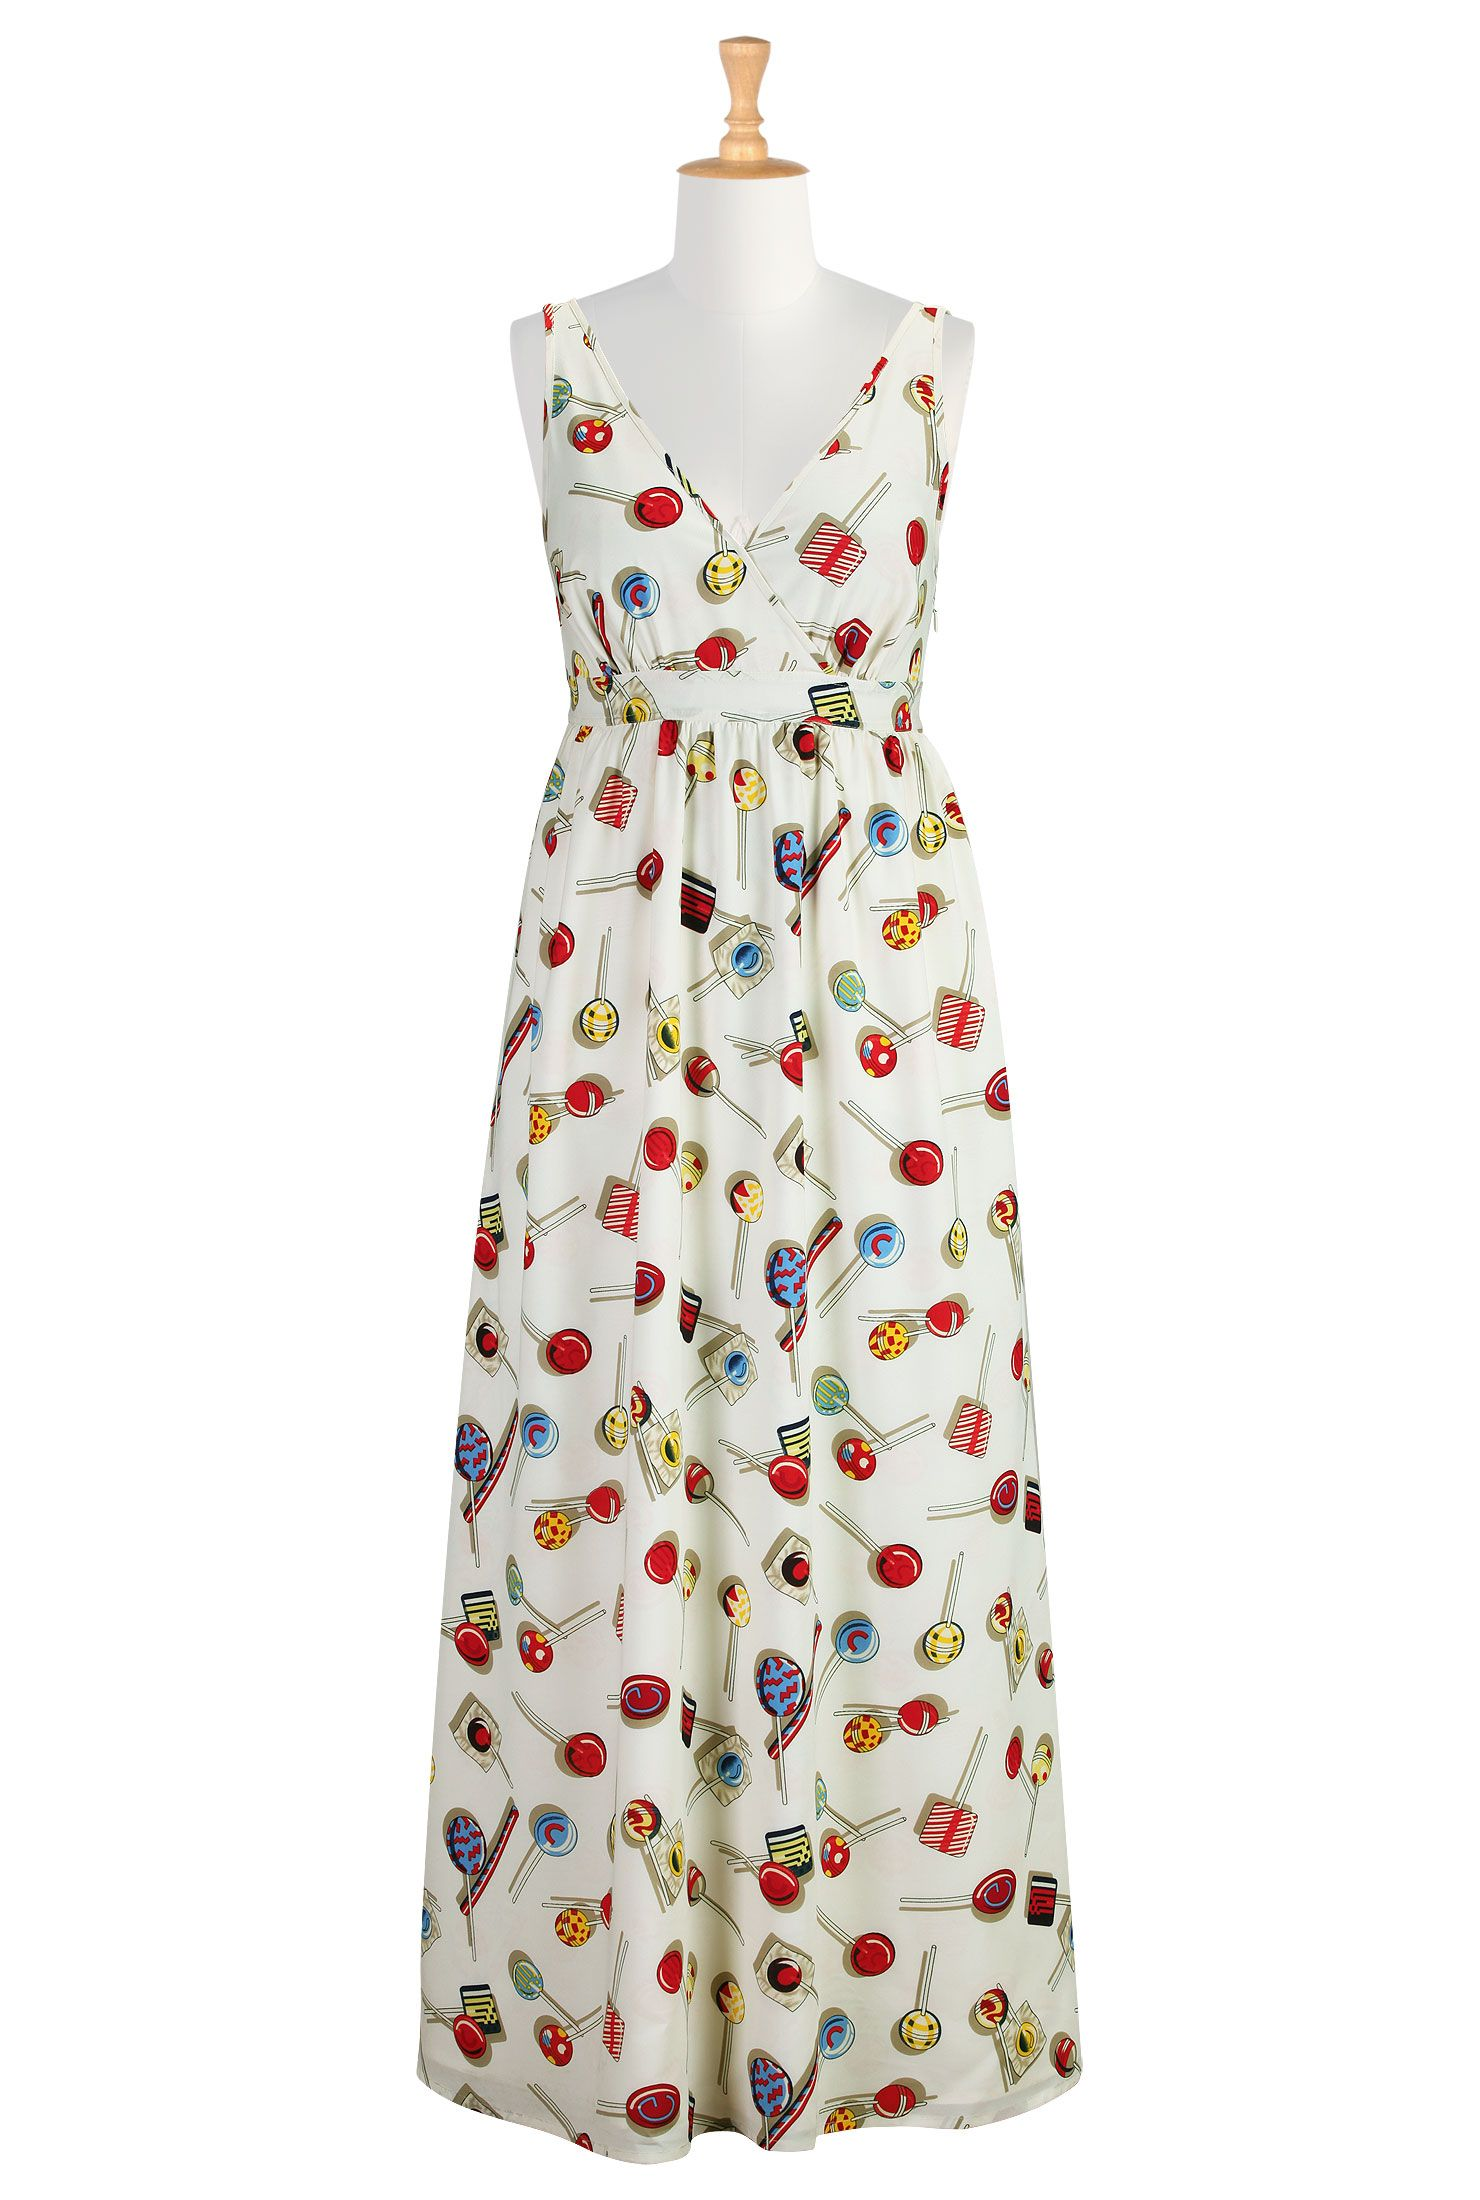 Candy Crush Print Dresses Crepe Print Maxi Dresses Women